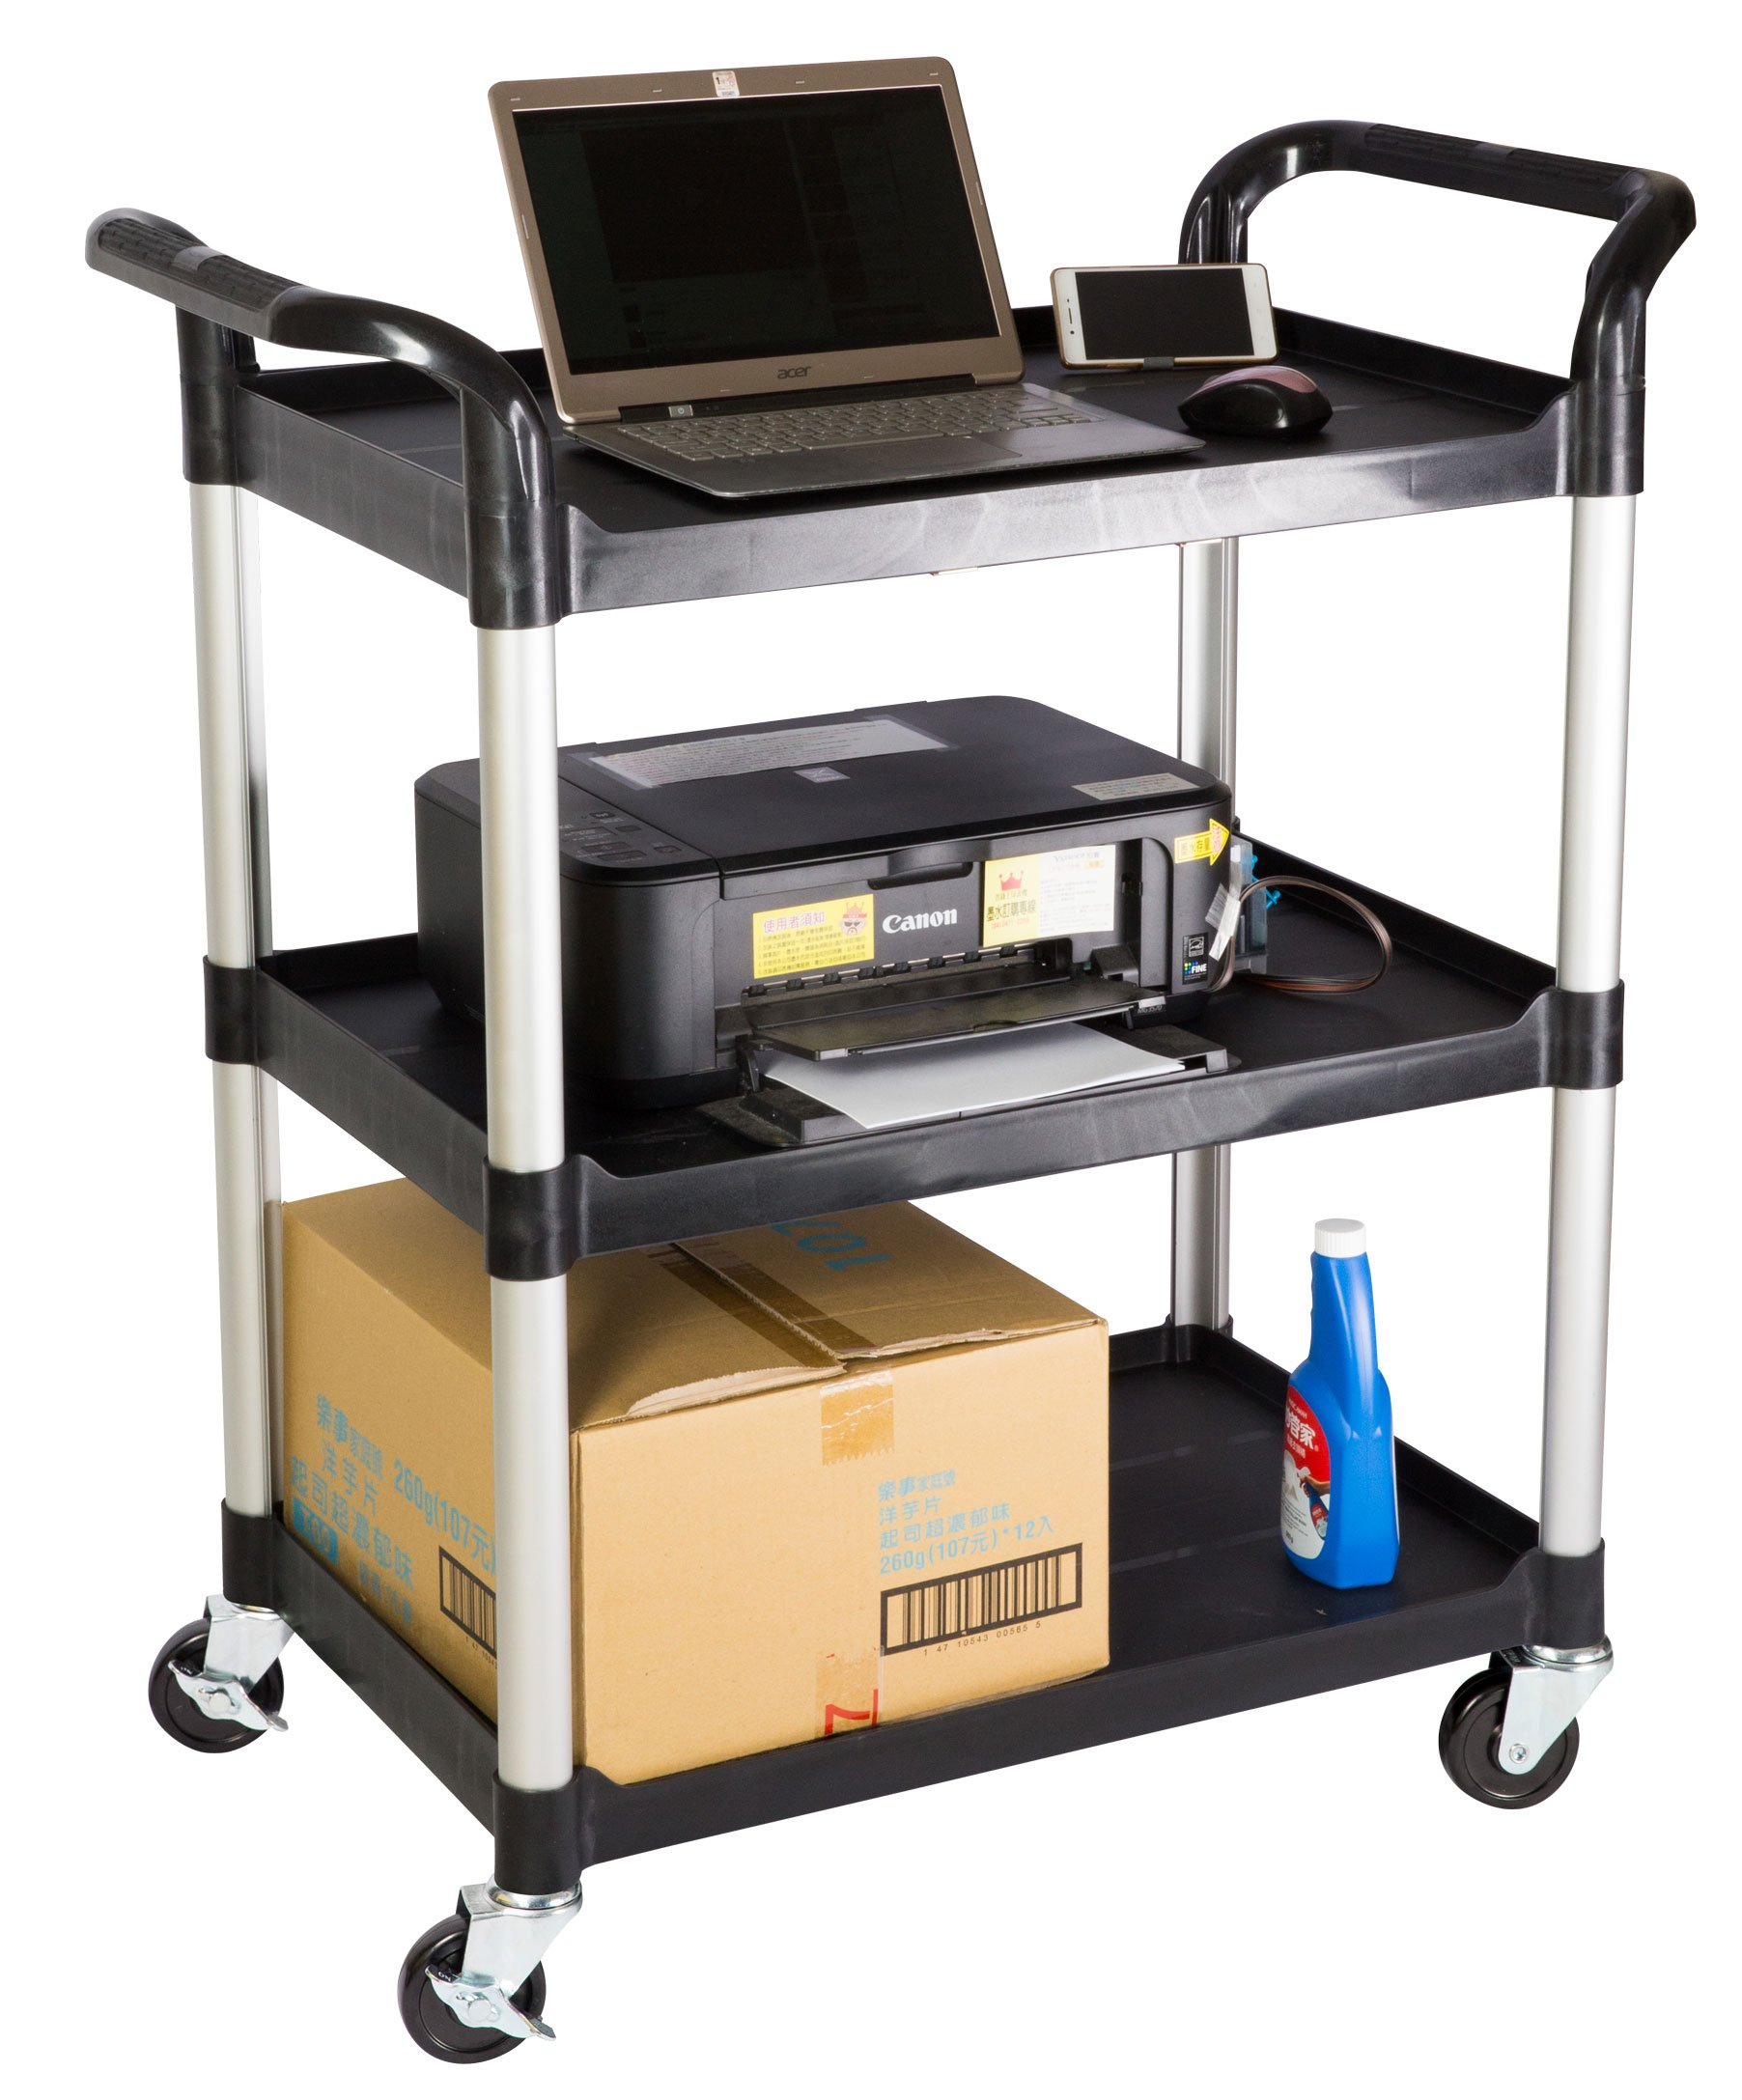 JaboEquip Commercial Multi-Purposed Rolling Utility Carts 3 Tiers, 265 lbs Load Cap.for Lab and Hospitality